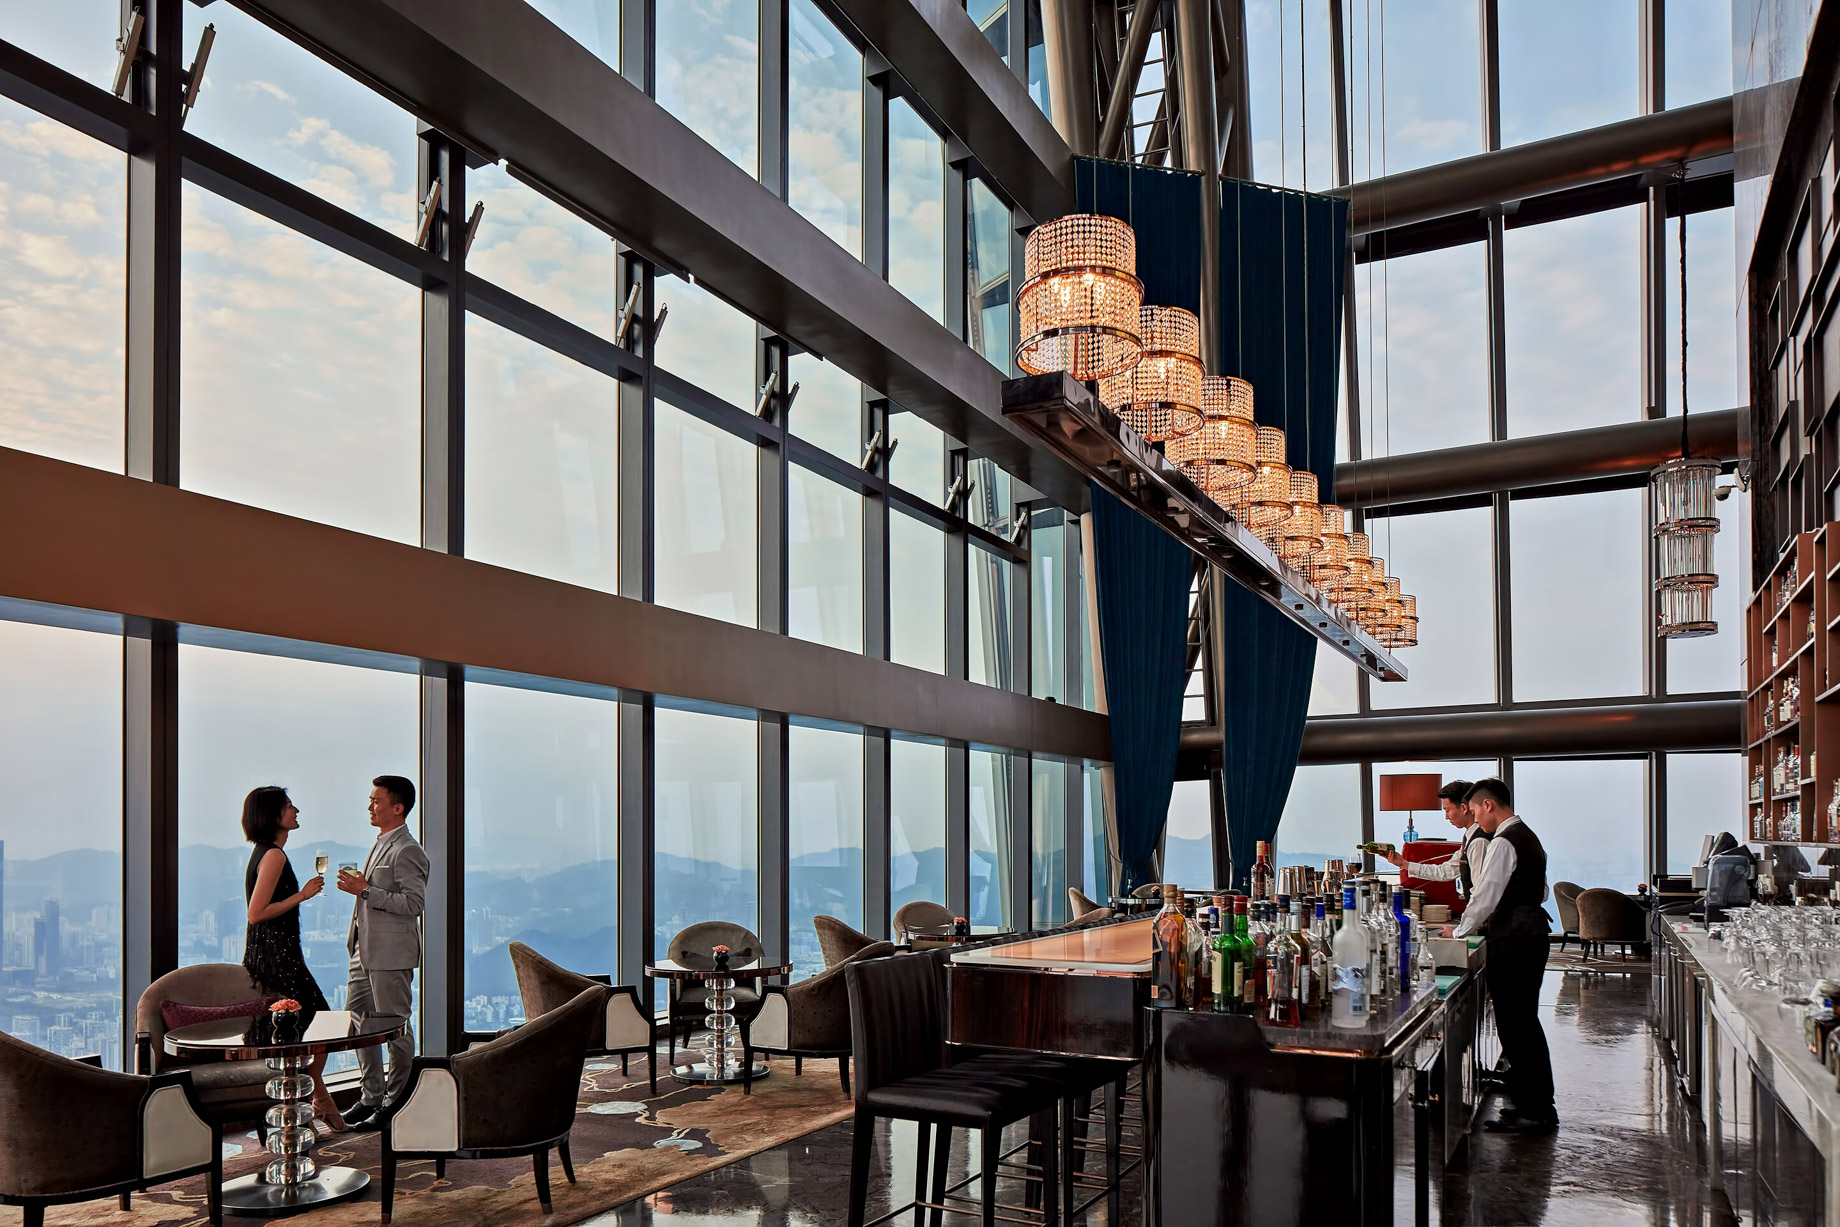 The St. Regis Shenzhen Luxury Hotel – Shenzhen, China – The Drawing Room and St. Regis Bar